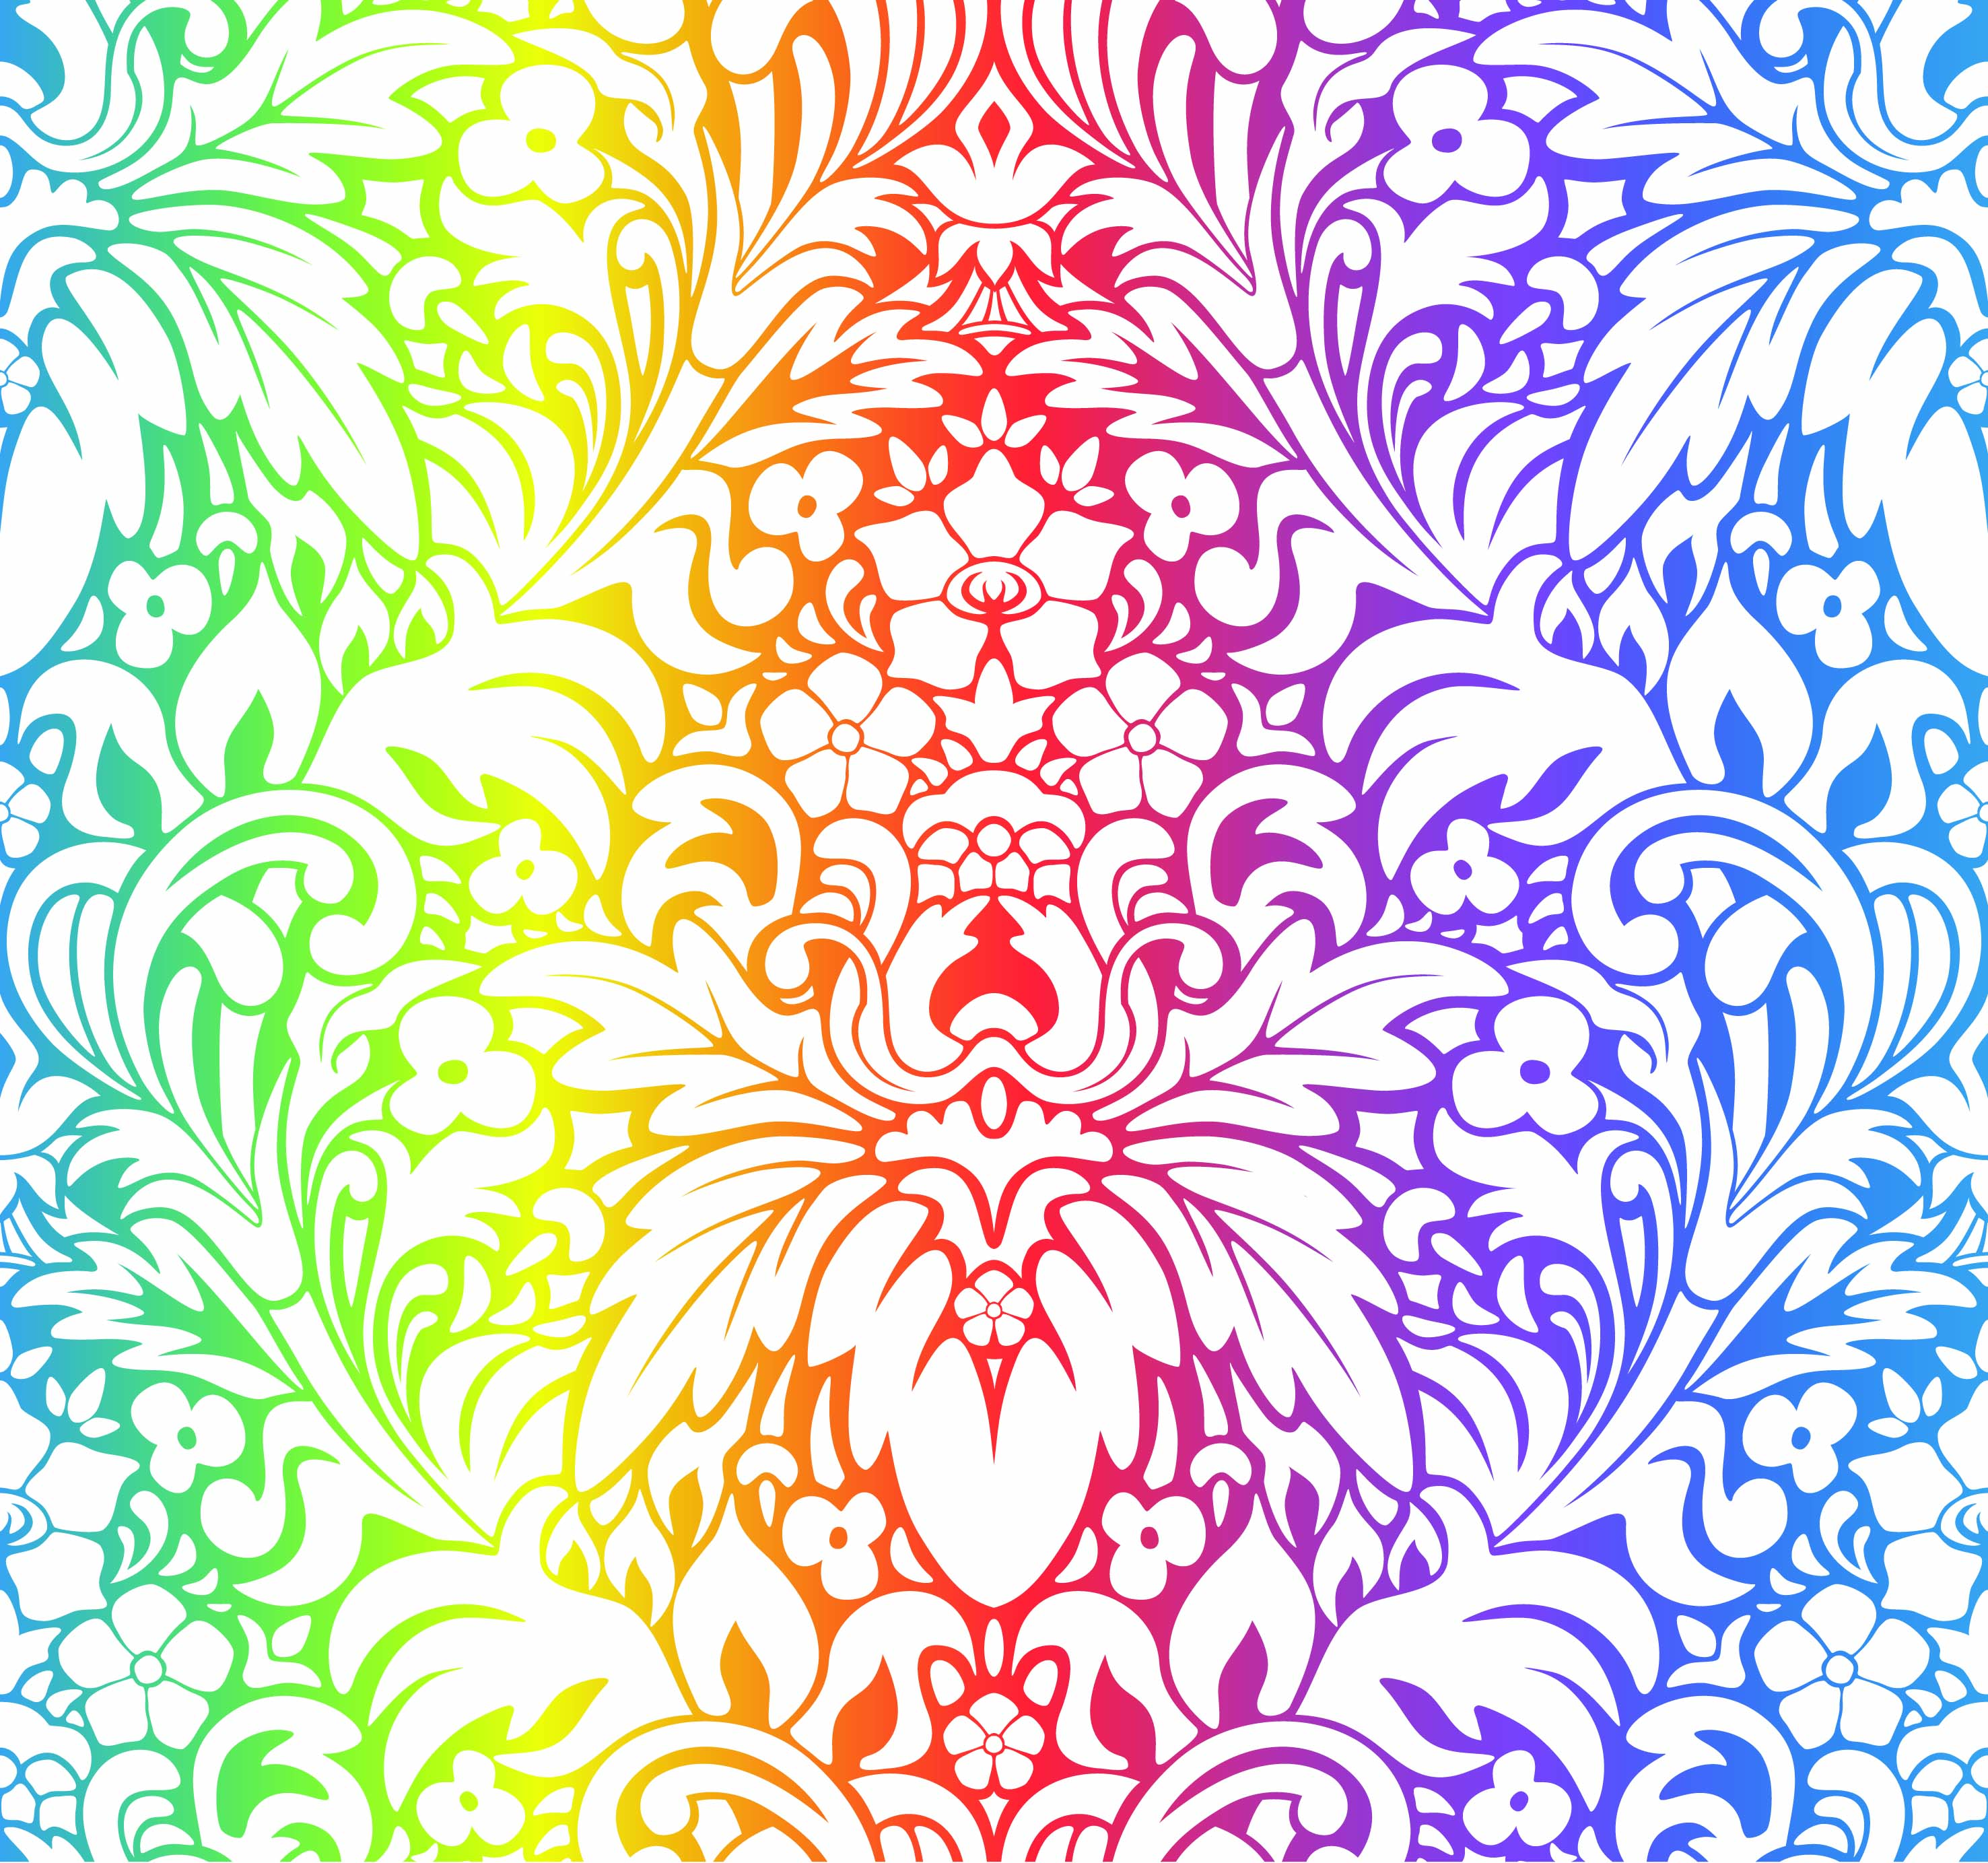 Cool background pattern vector Free Vector / 4Vector